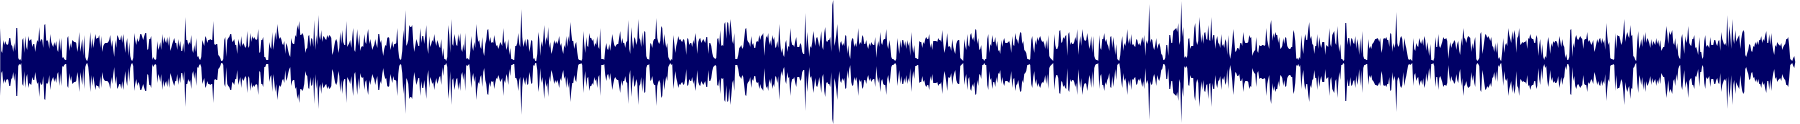 waveform of track #73642